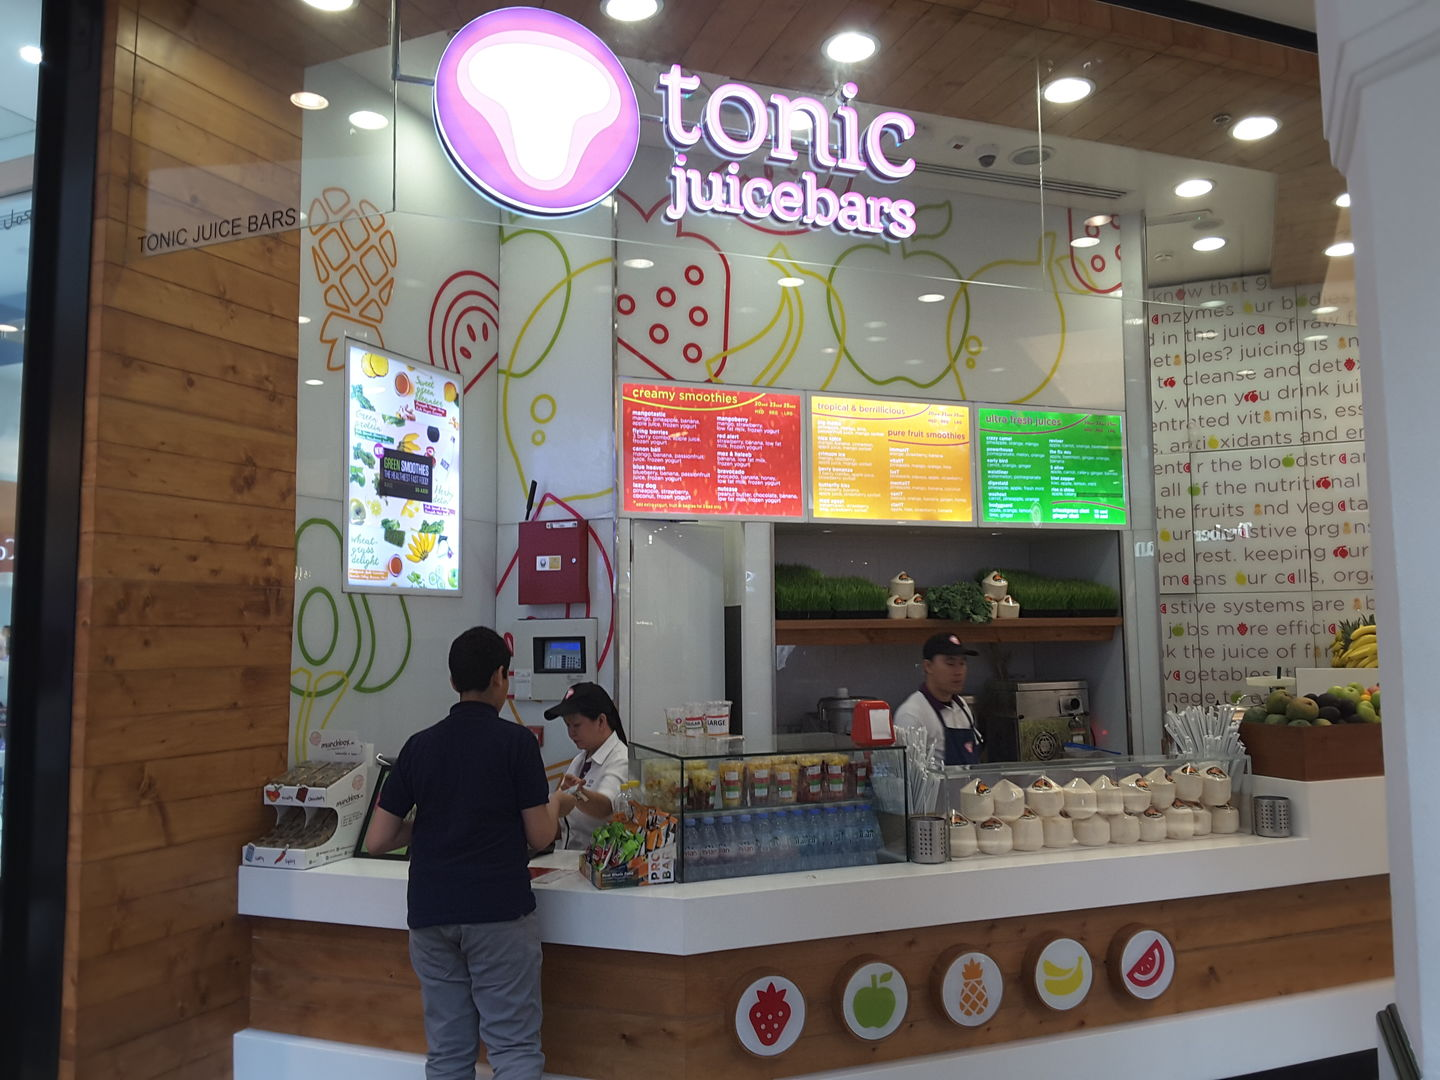 HiDubai-business-tonic-juice-bars-food-beverage-coffee-shops-al-barsha-1-dubai-2